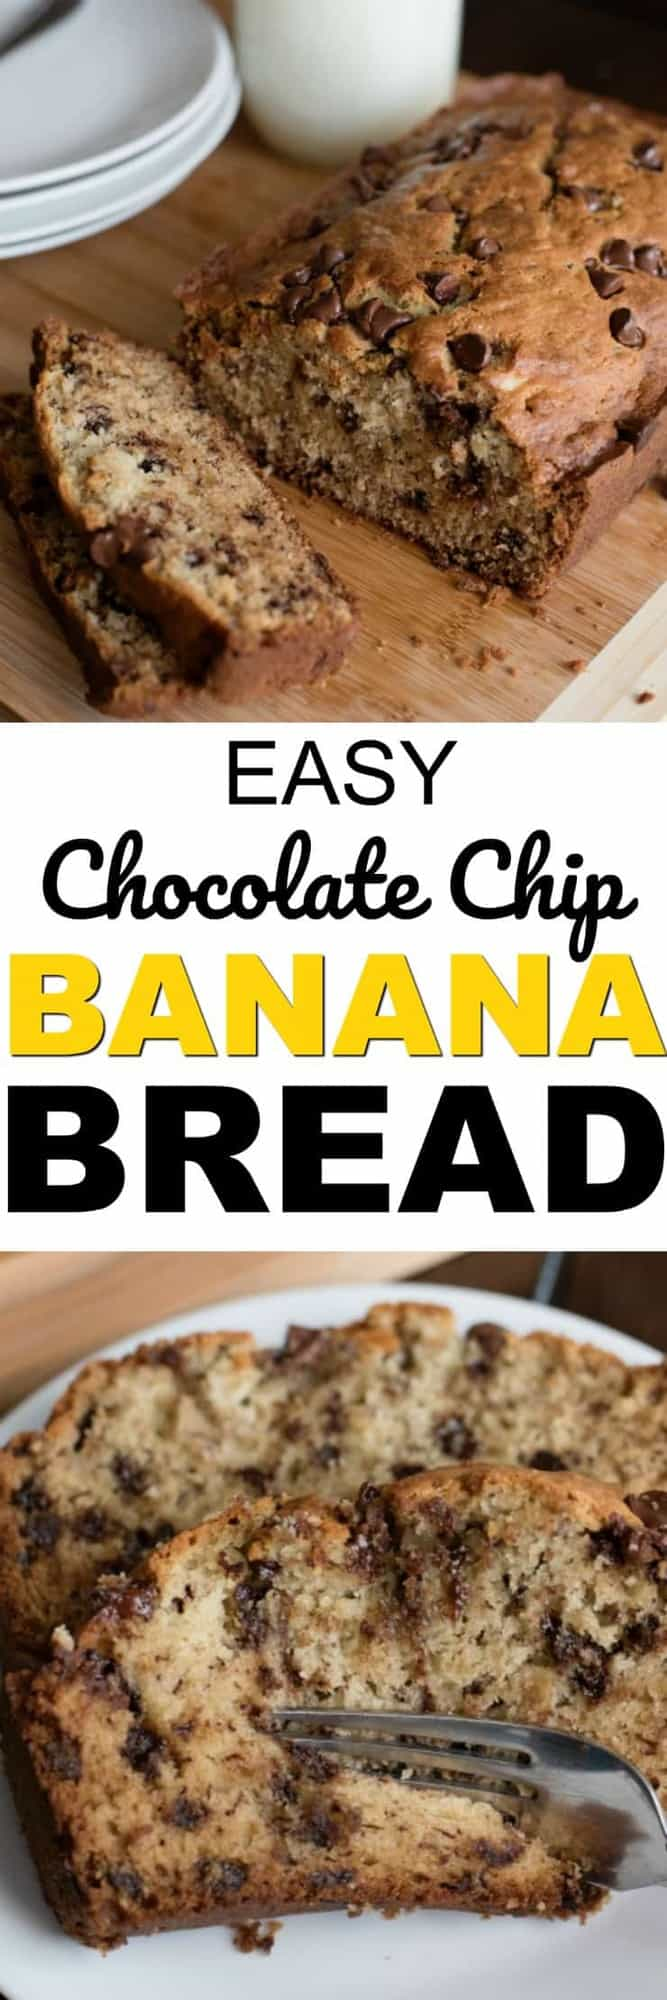 The best Chocolate Chip Banana Bread recipe. This easy to make, super moist banana bread recipe will be your go-to recipe anytime you have overripe bananas on your counter!